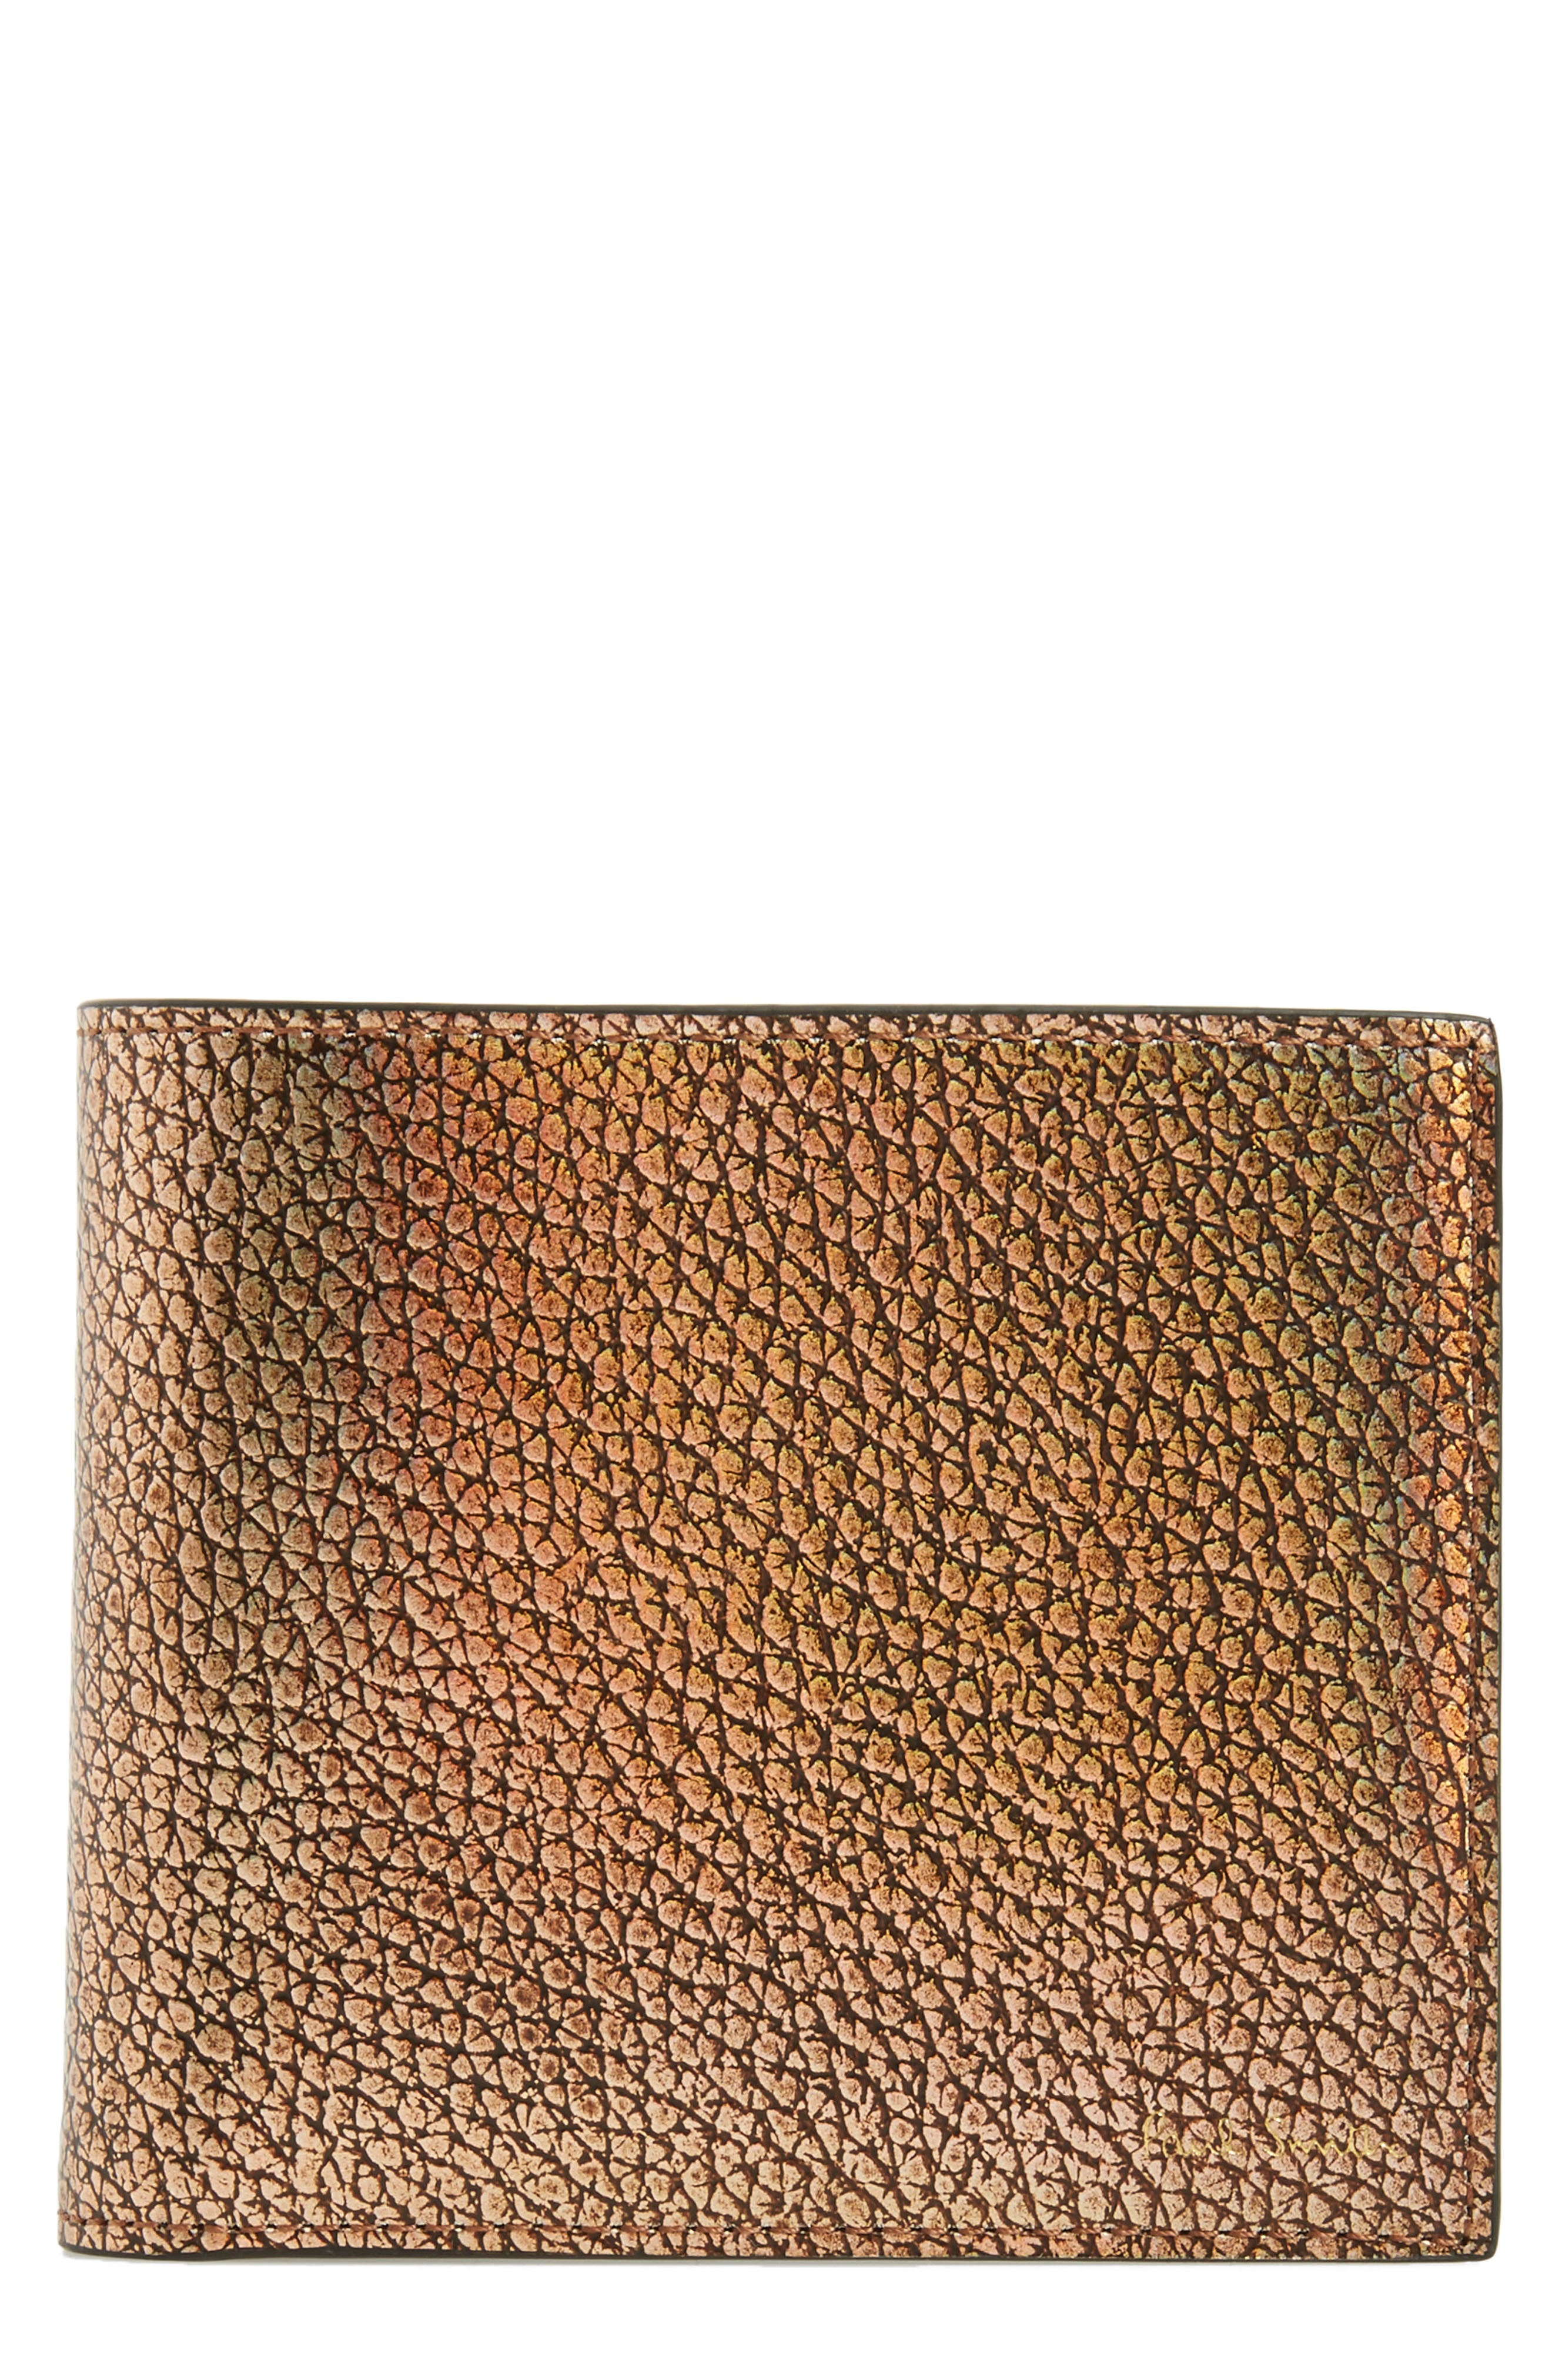 Alternate Image 1 Selected - Paul Smith Metallic Leather Wallet